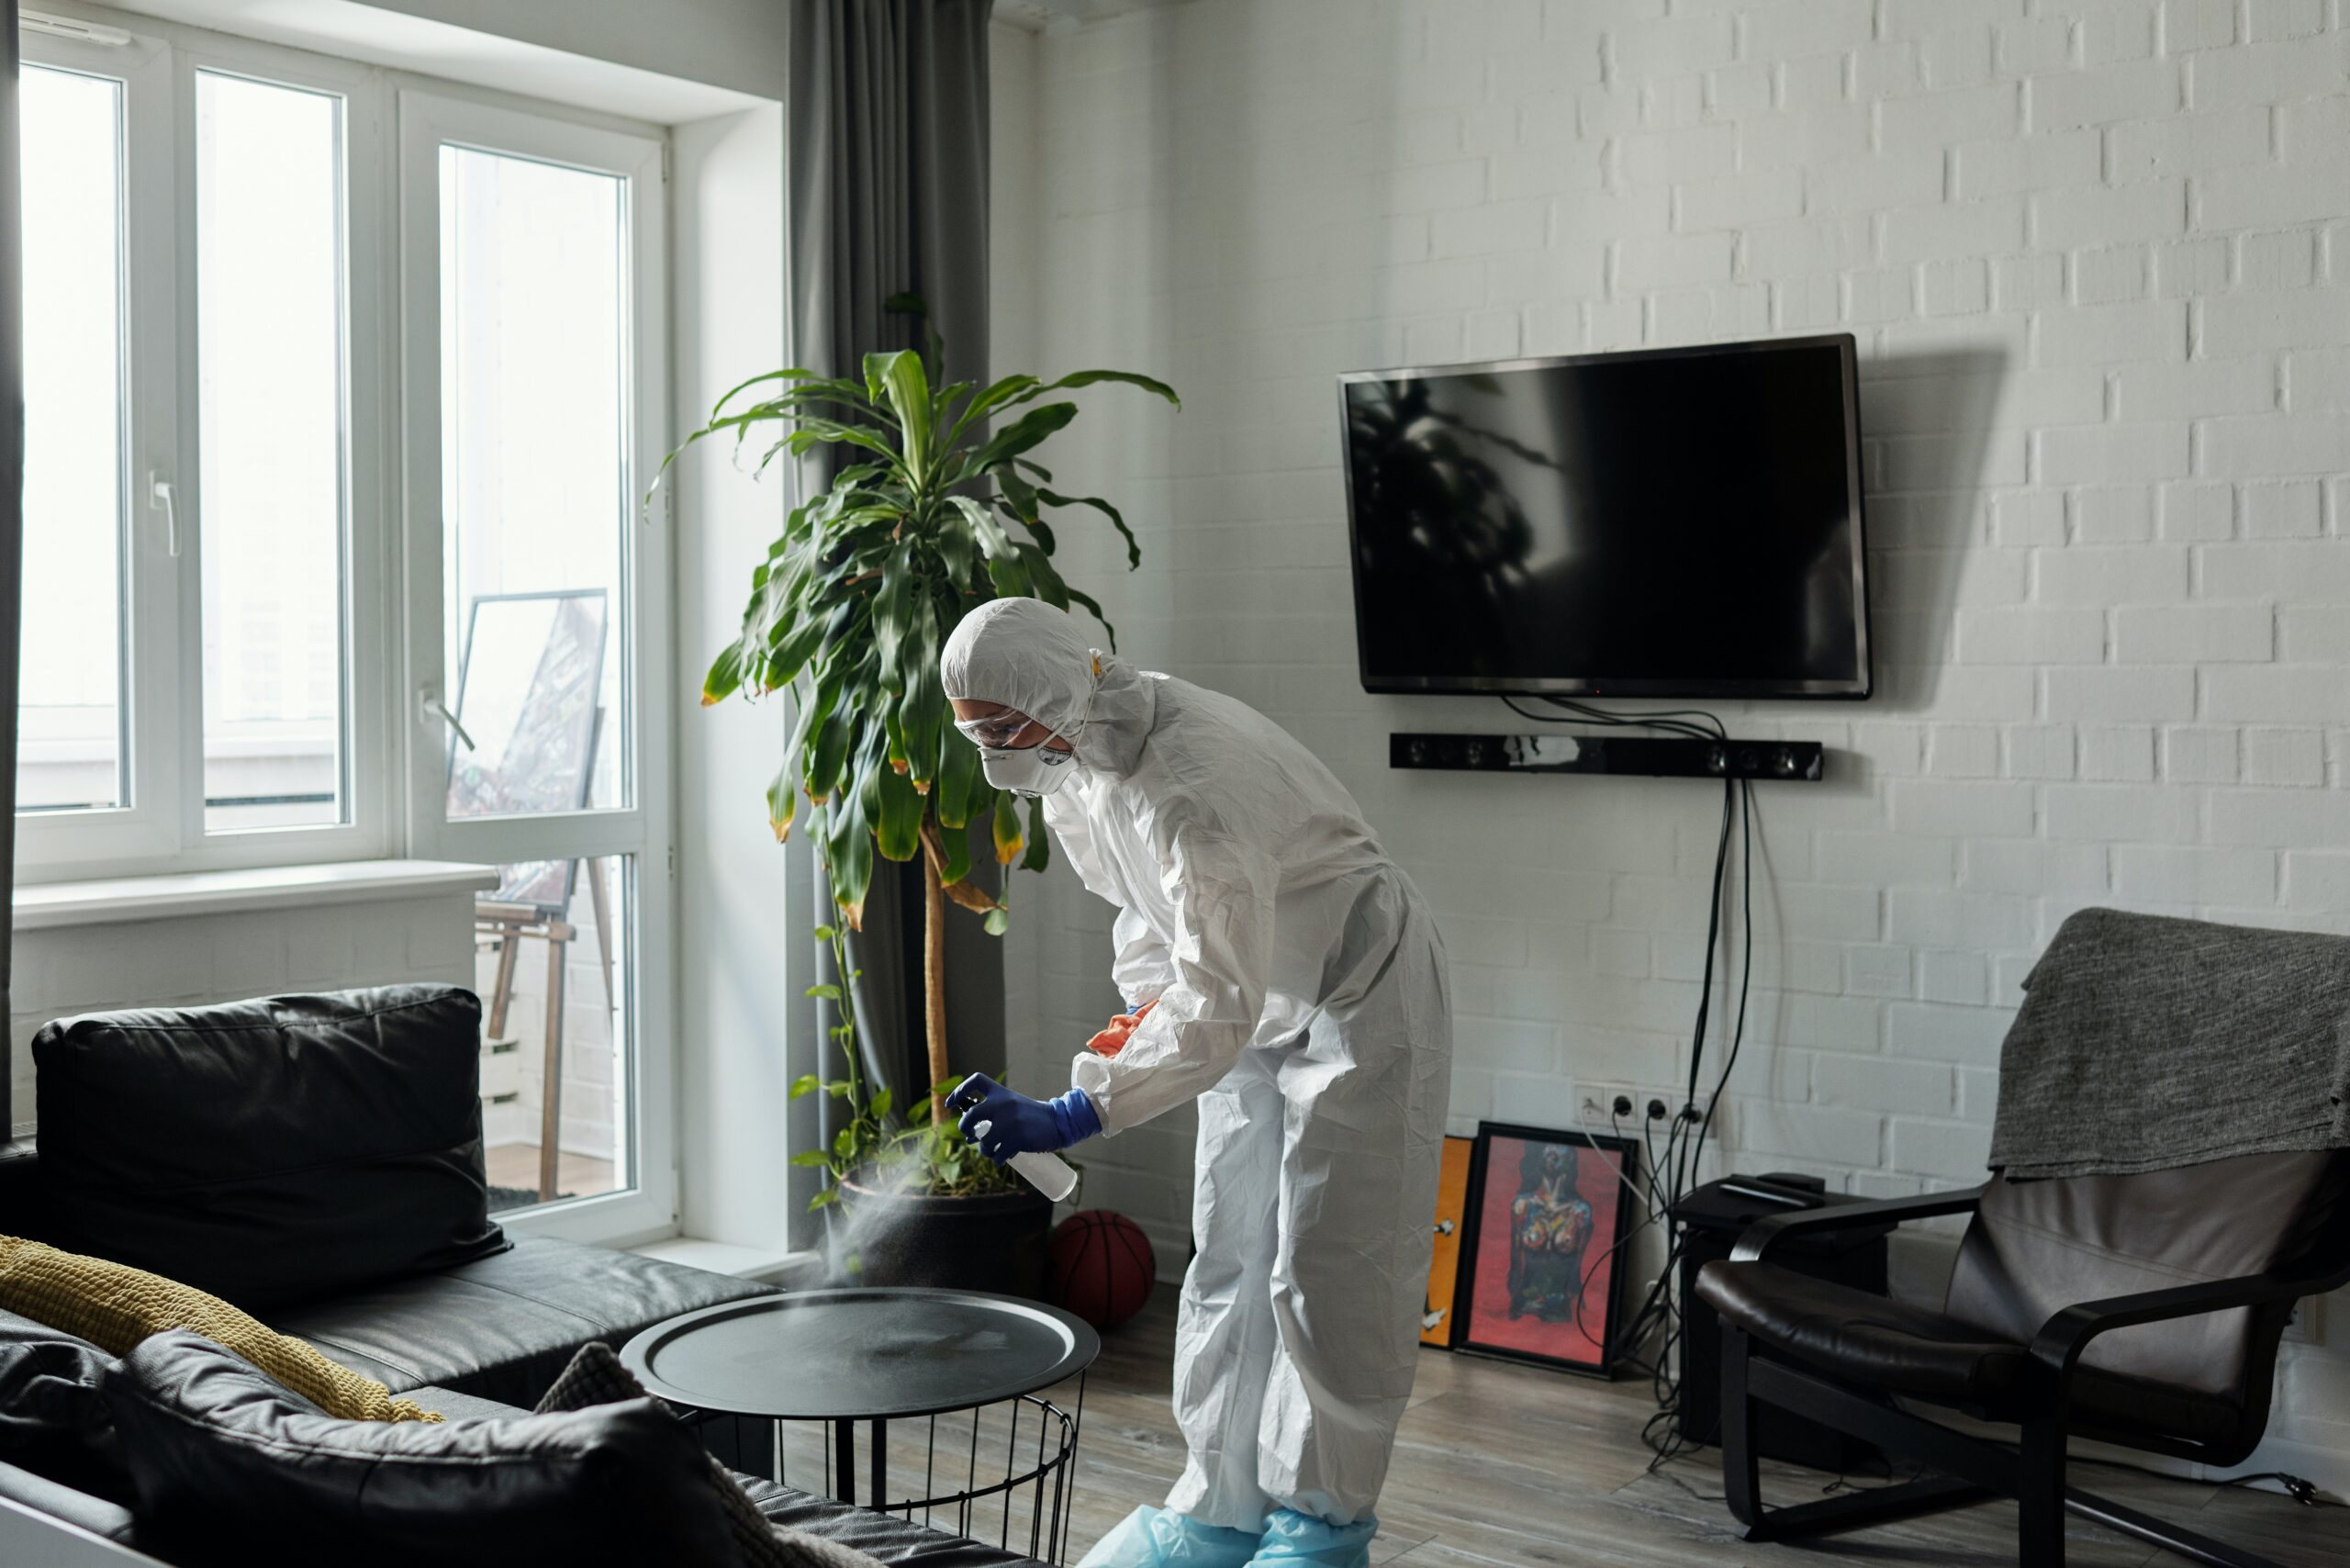 A person using a disinfectant and wearing protective equipment while cleaning